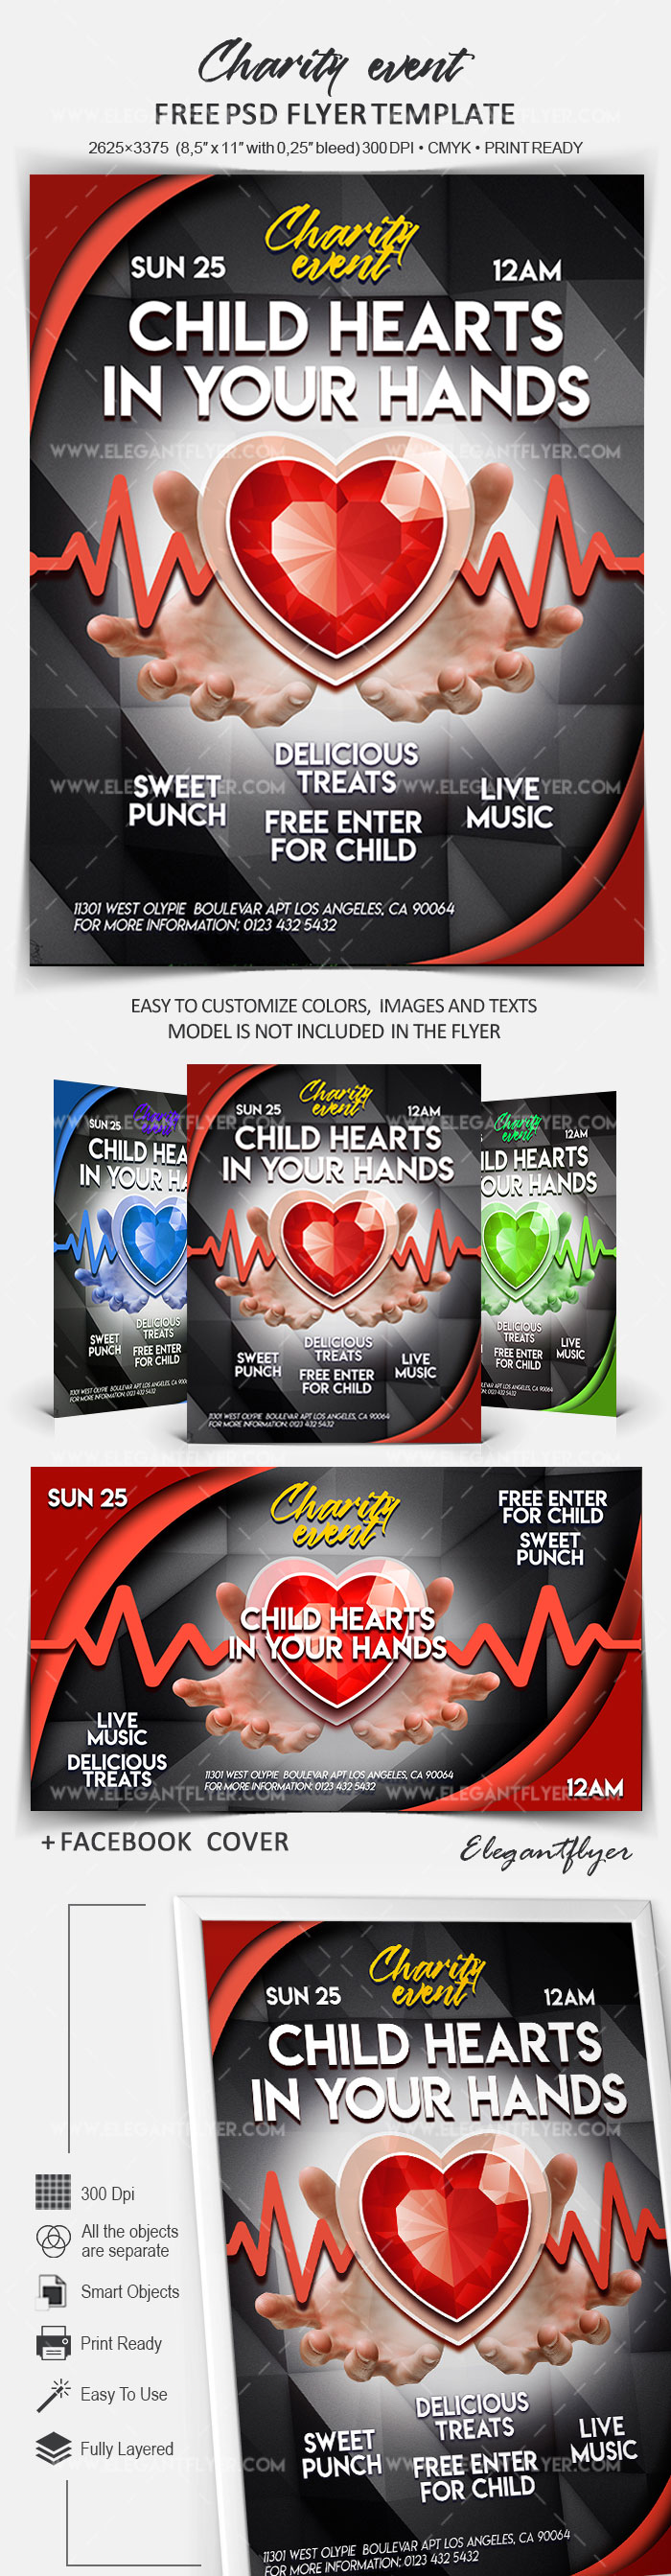 Charity Event – Free Flyer PSD Template